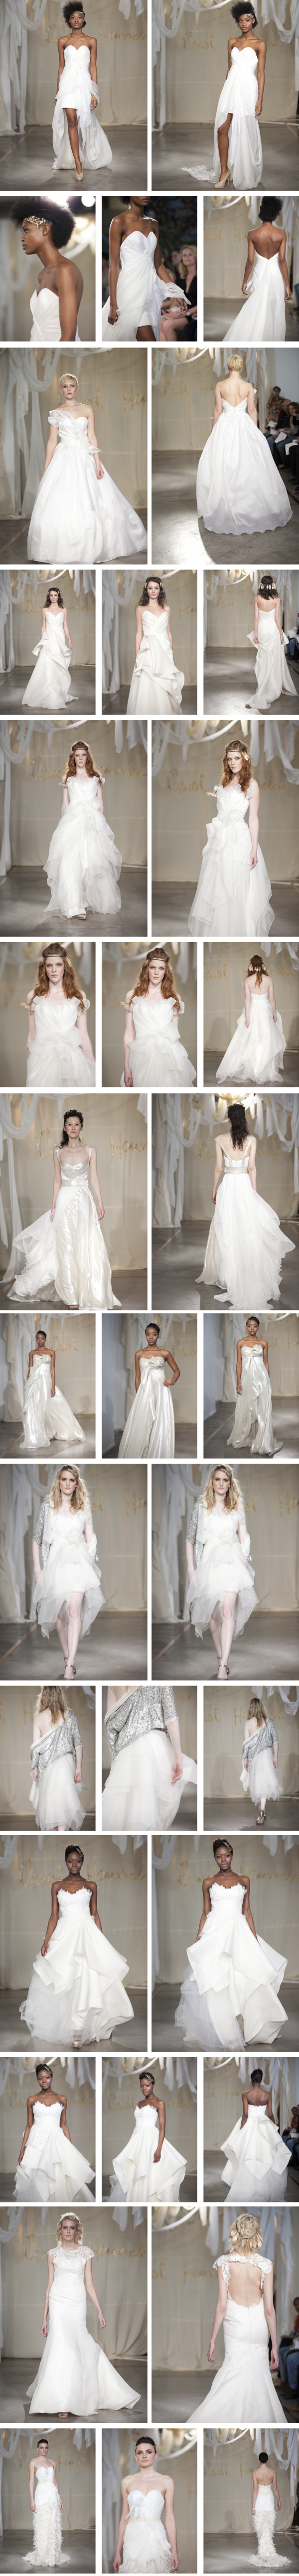 wedding dress trends